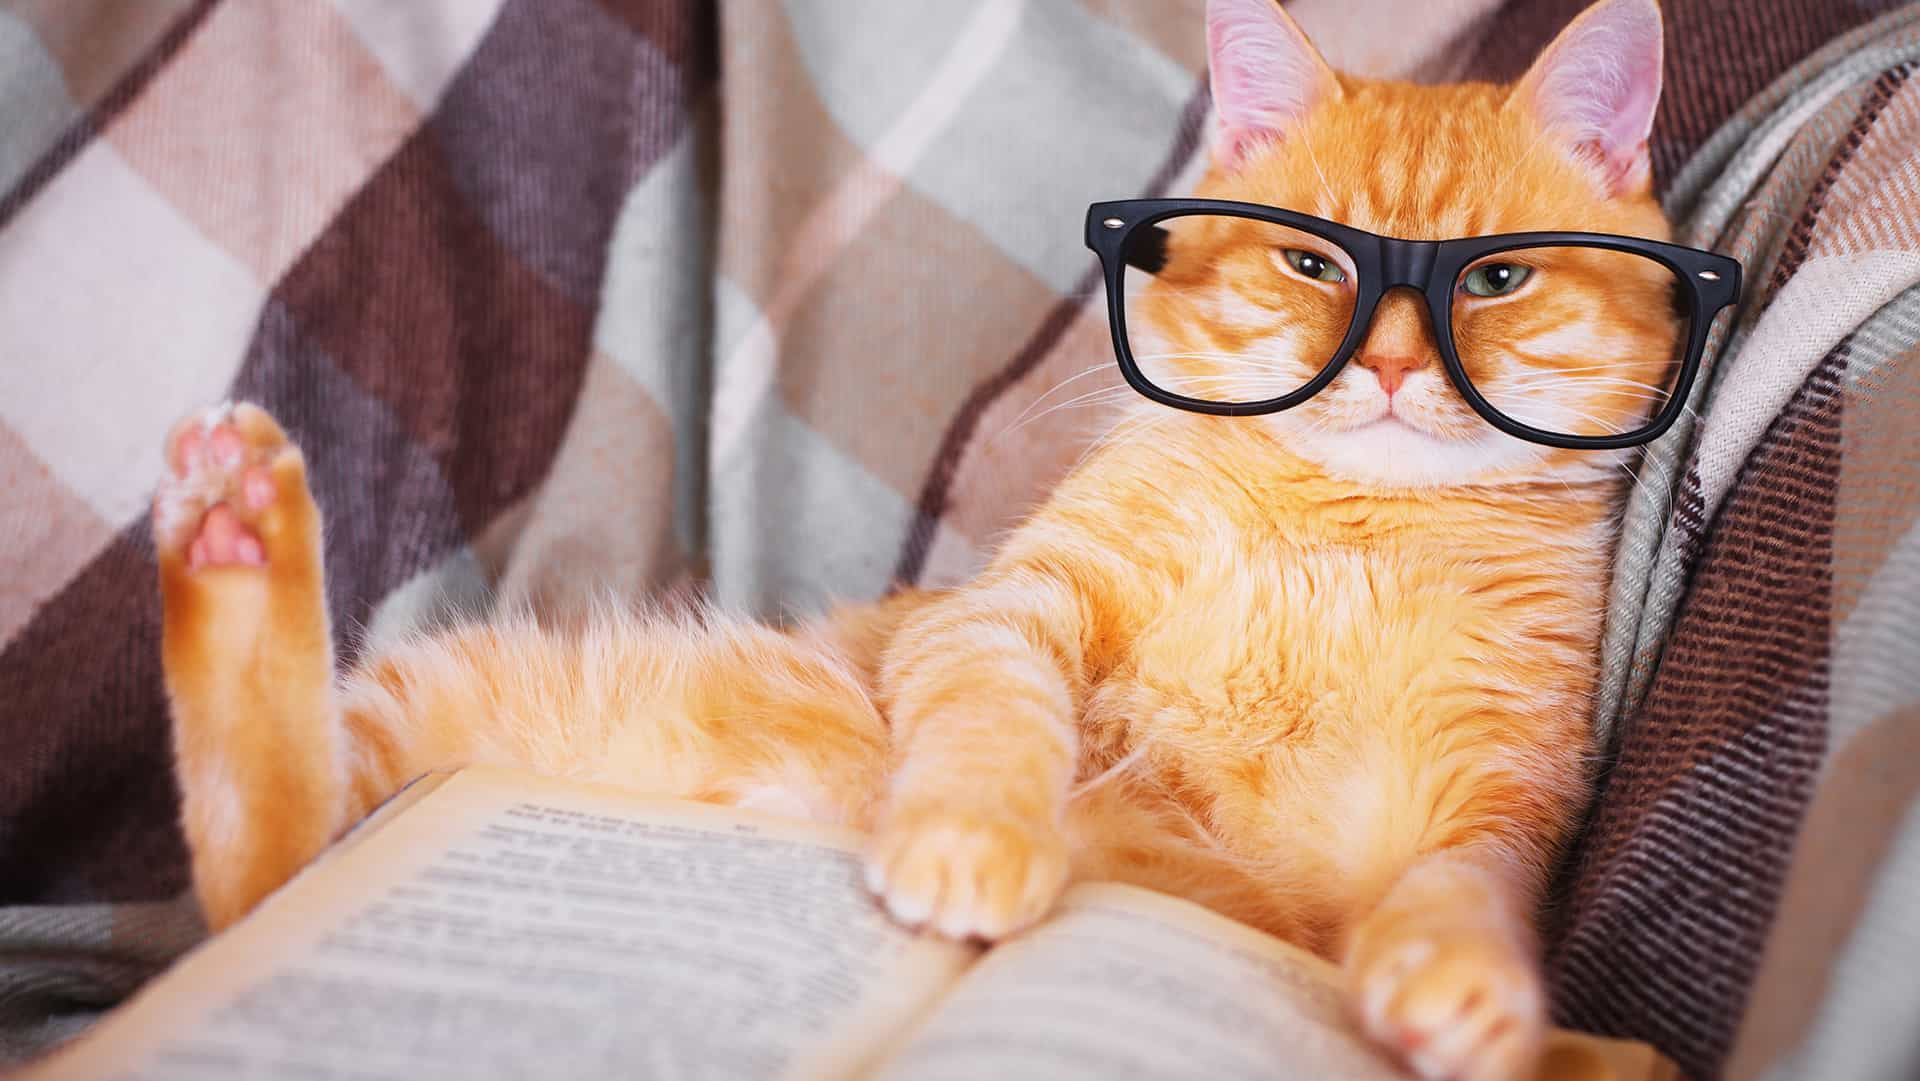 A studious orange tabby with glasses on reading a book